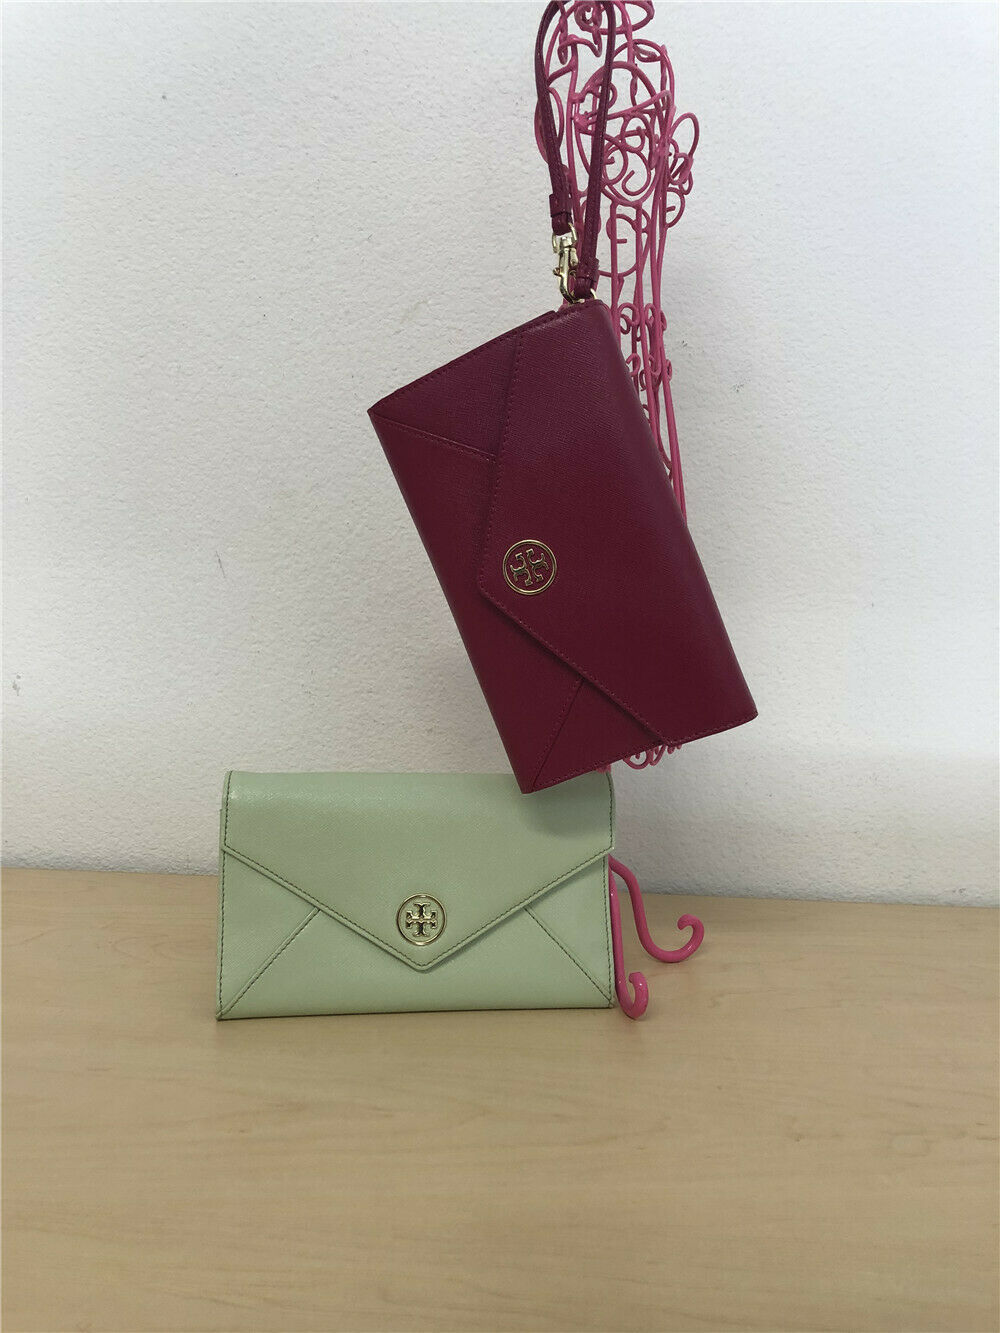 Primary image for Tory Burch Robinson Envelope Clutch WOMEN'S CLASSIC VINTAGE HANDBAG 48159257